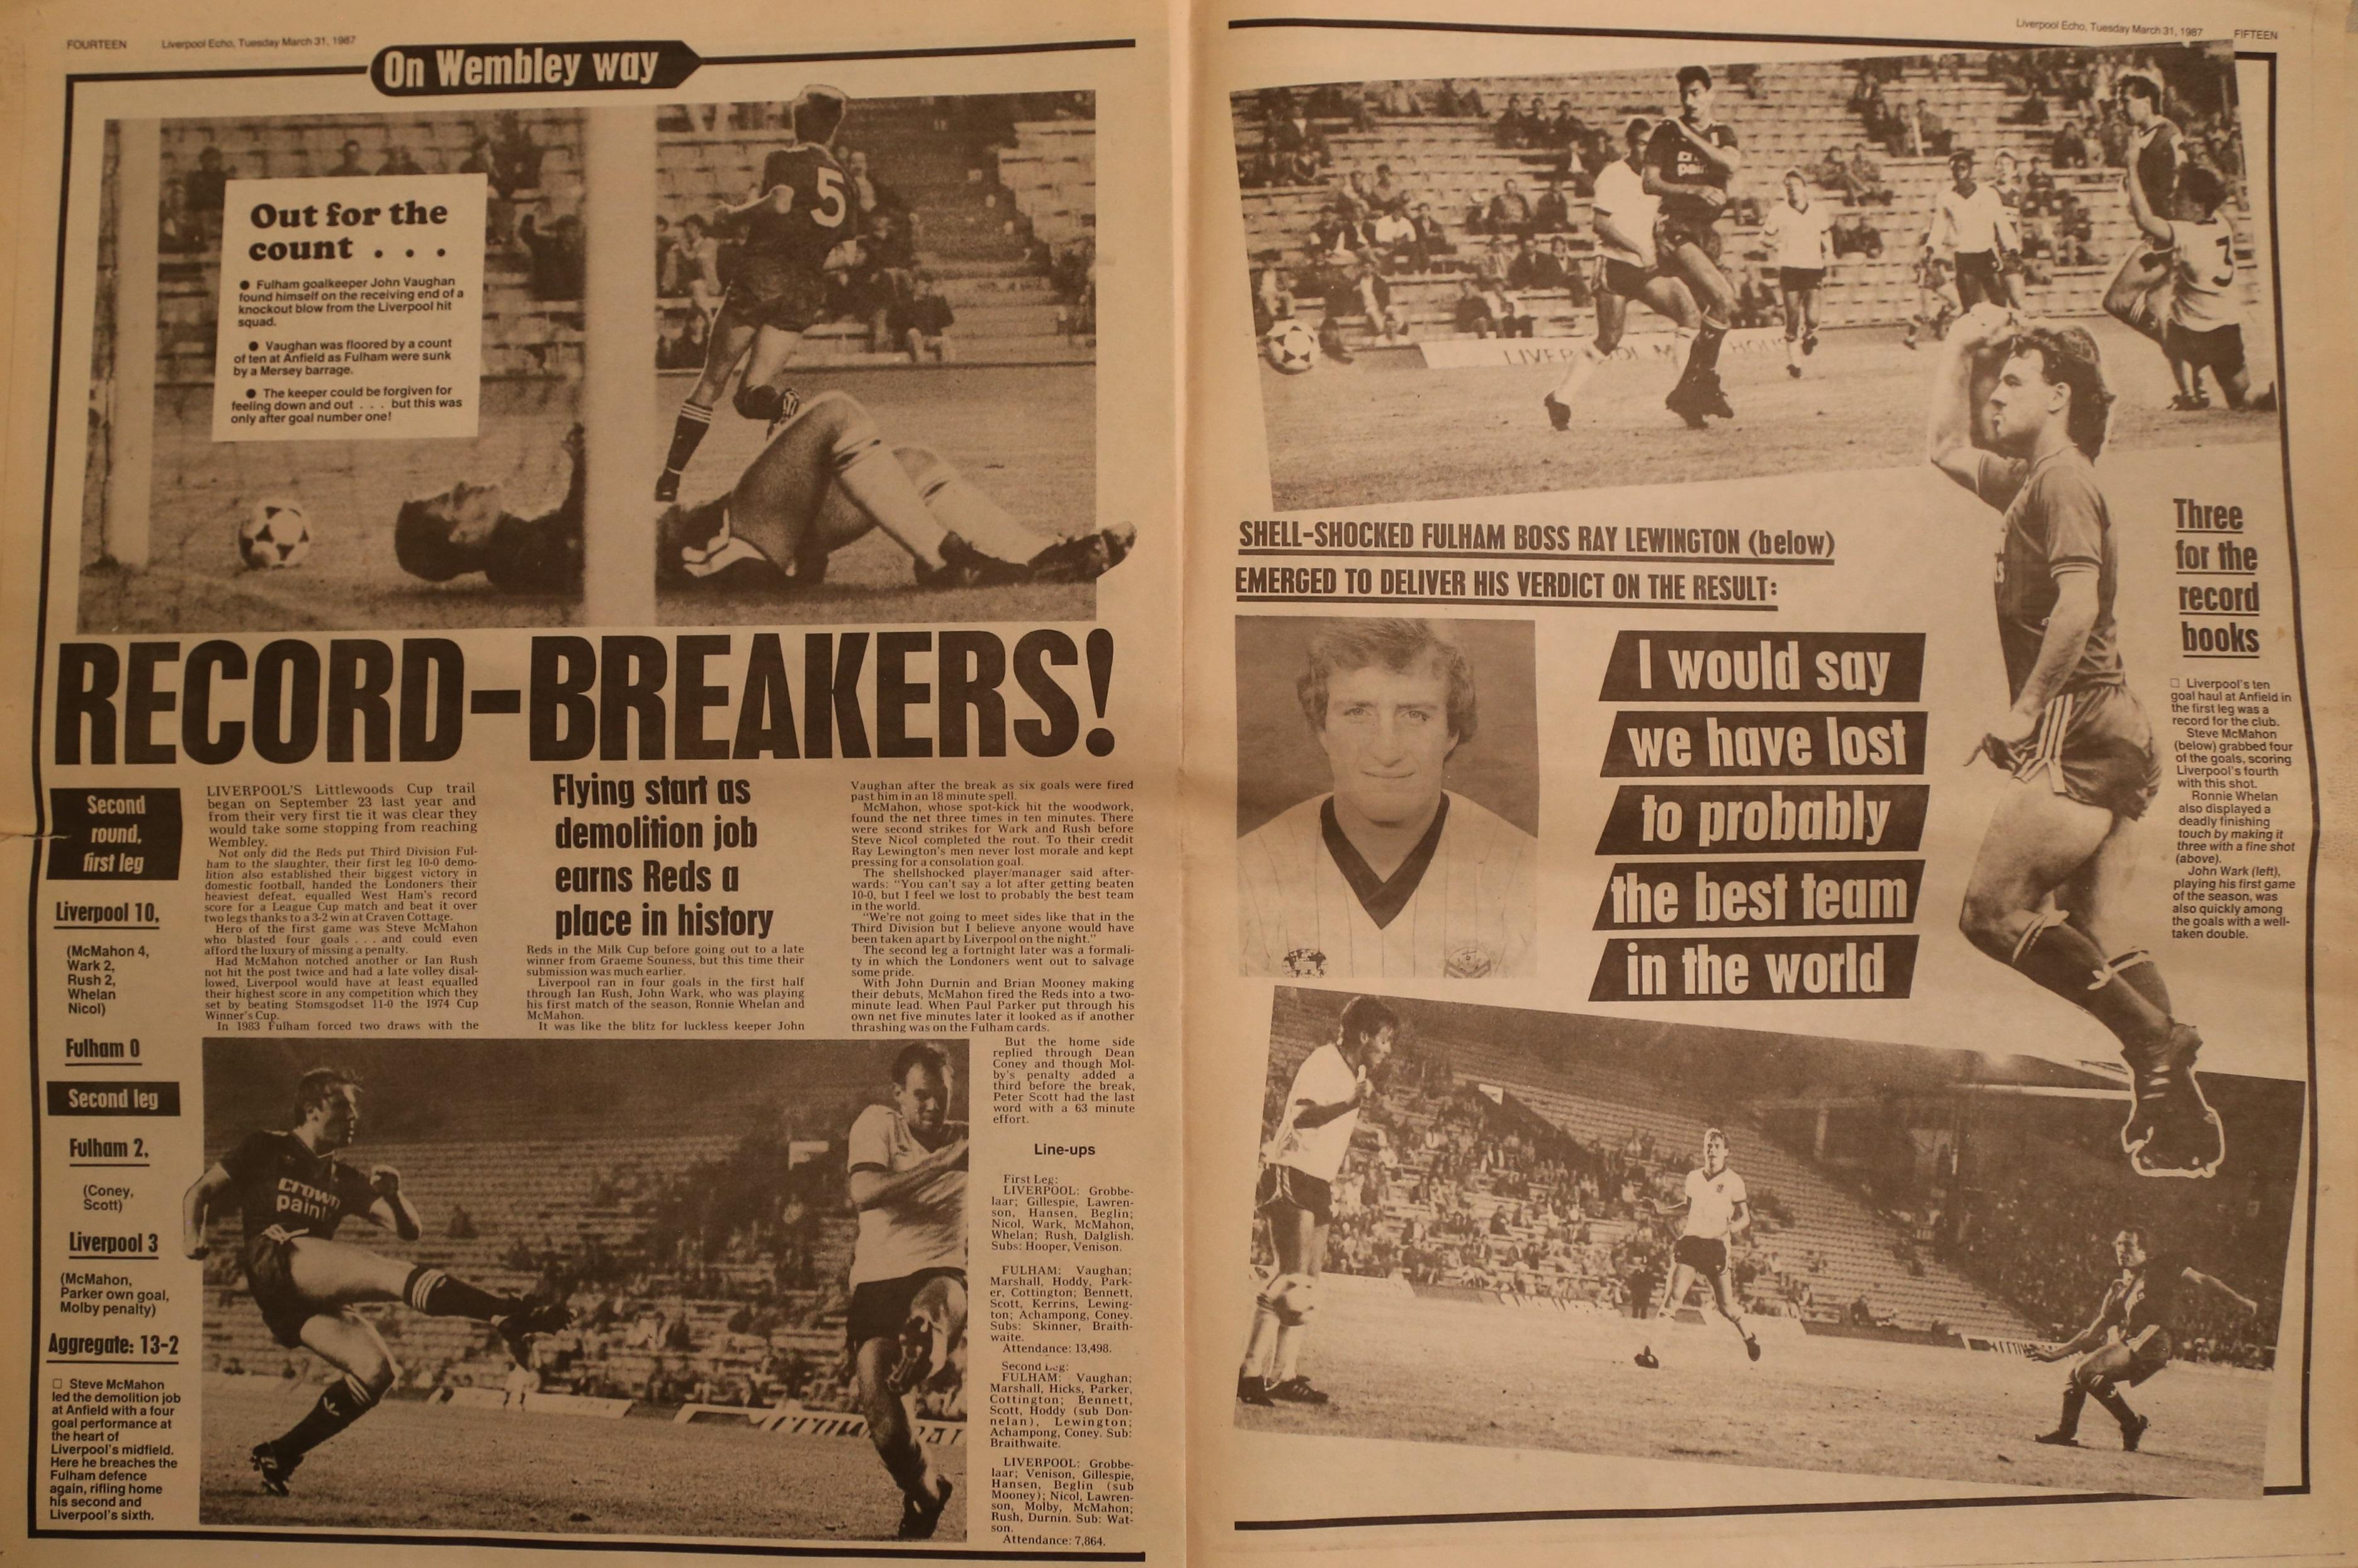 Record-breakers - 23 September 1986